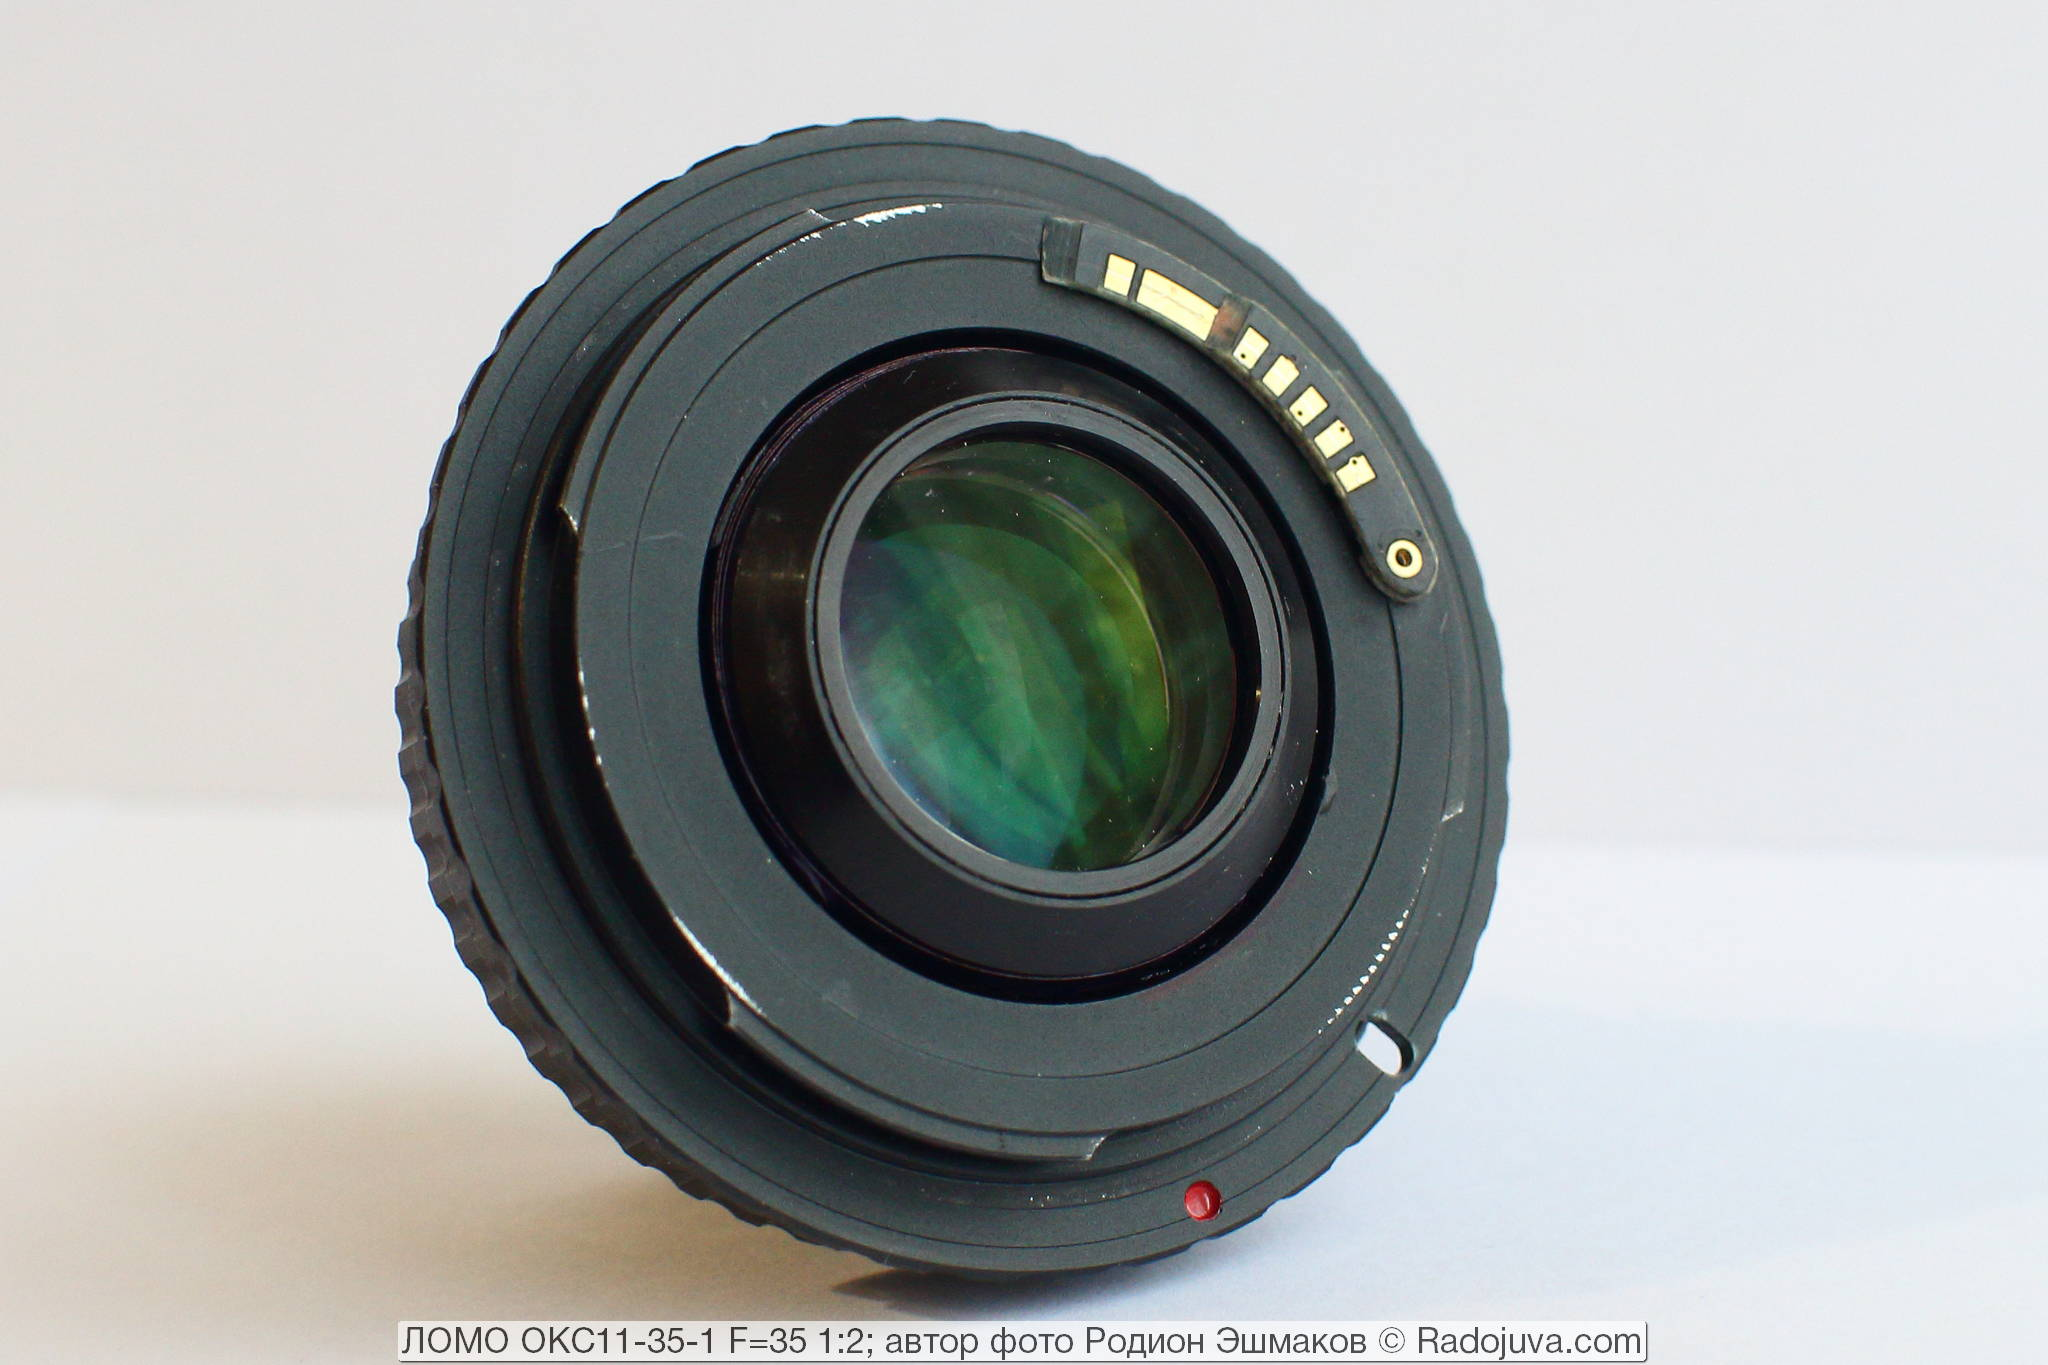 oks-11-35-1-f2-lens-review-5